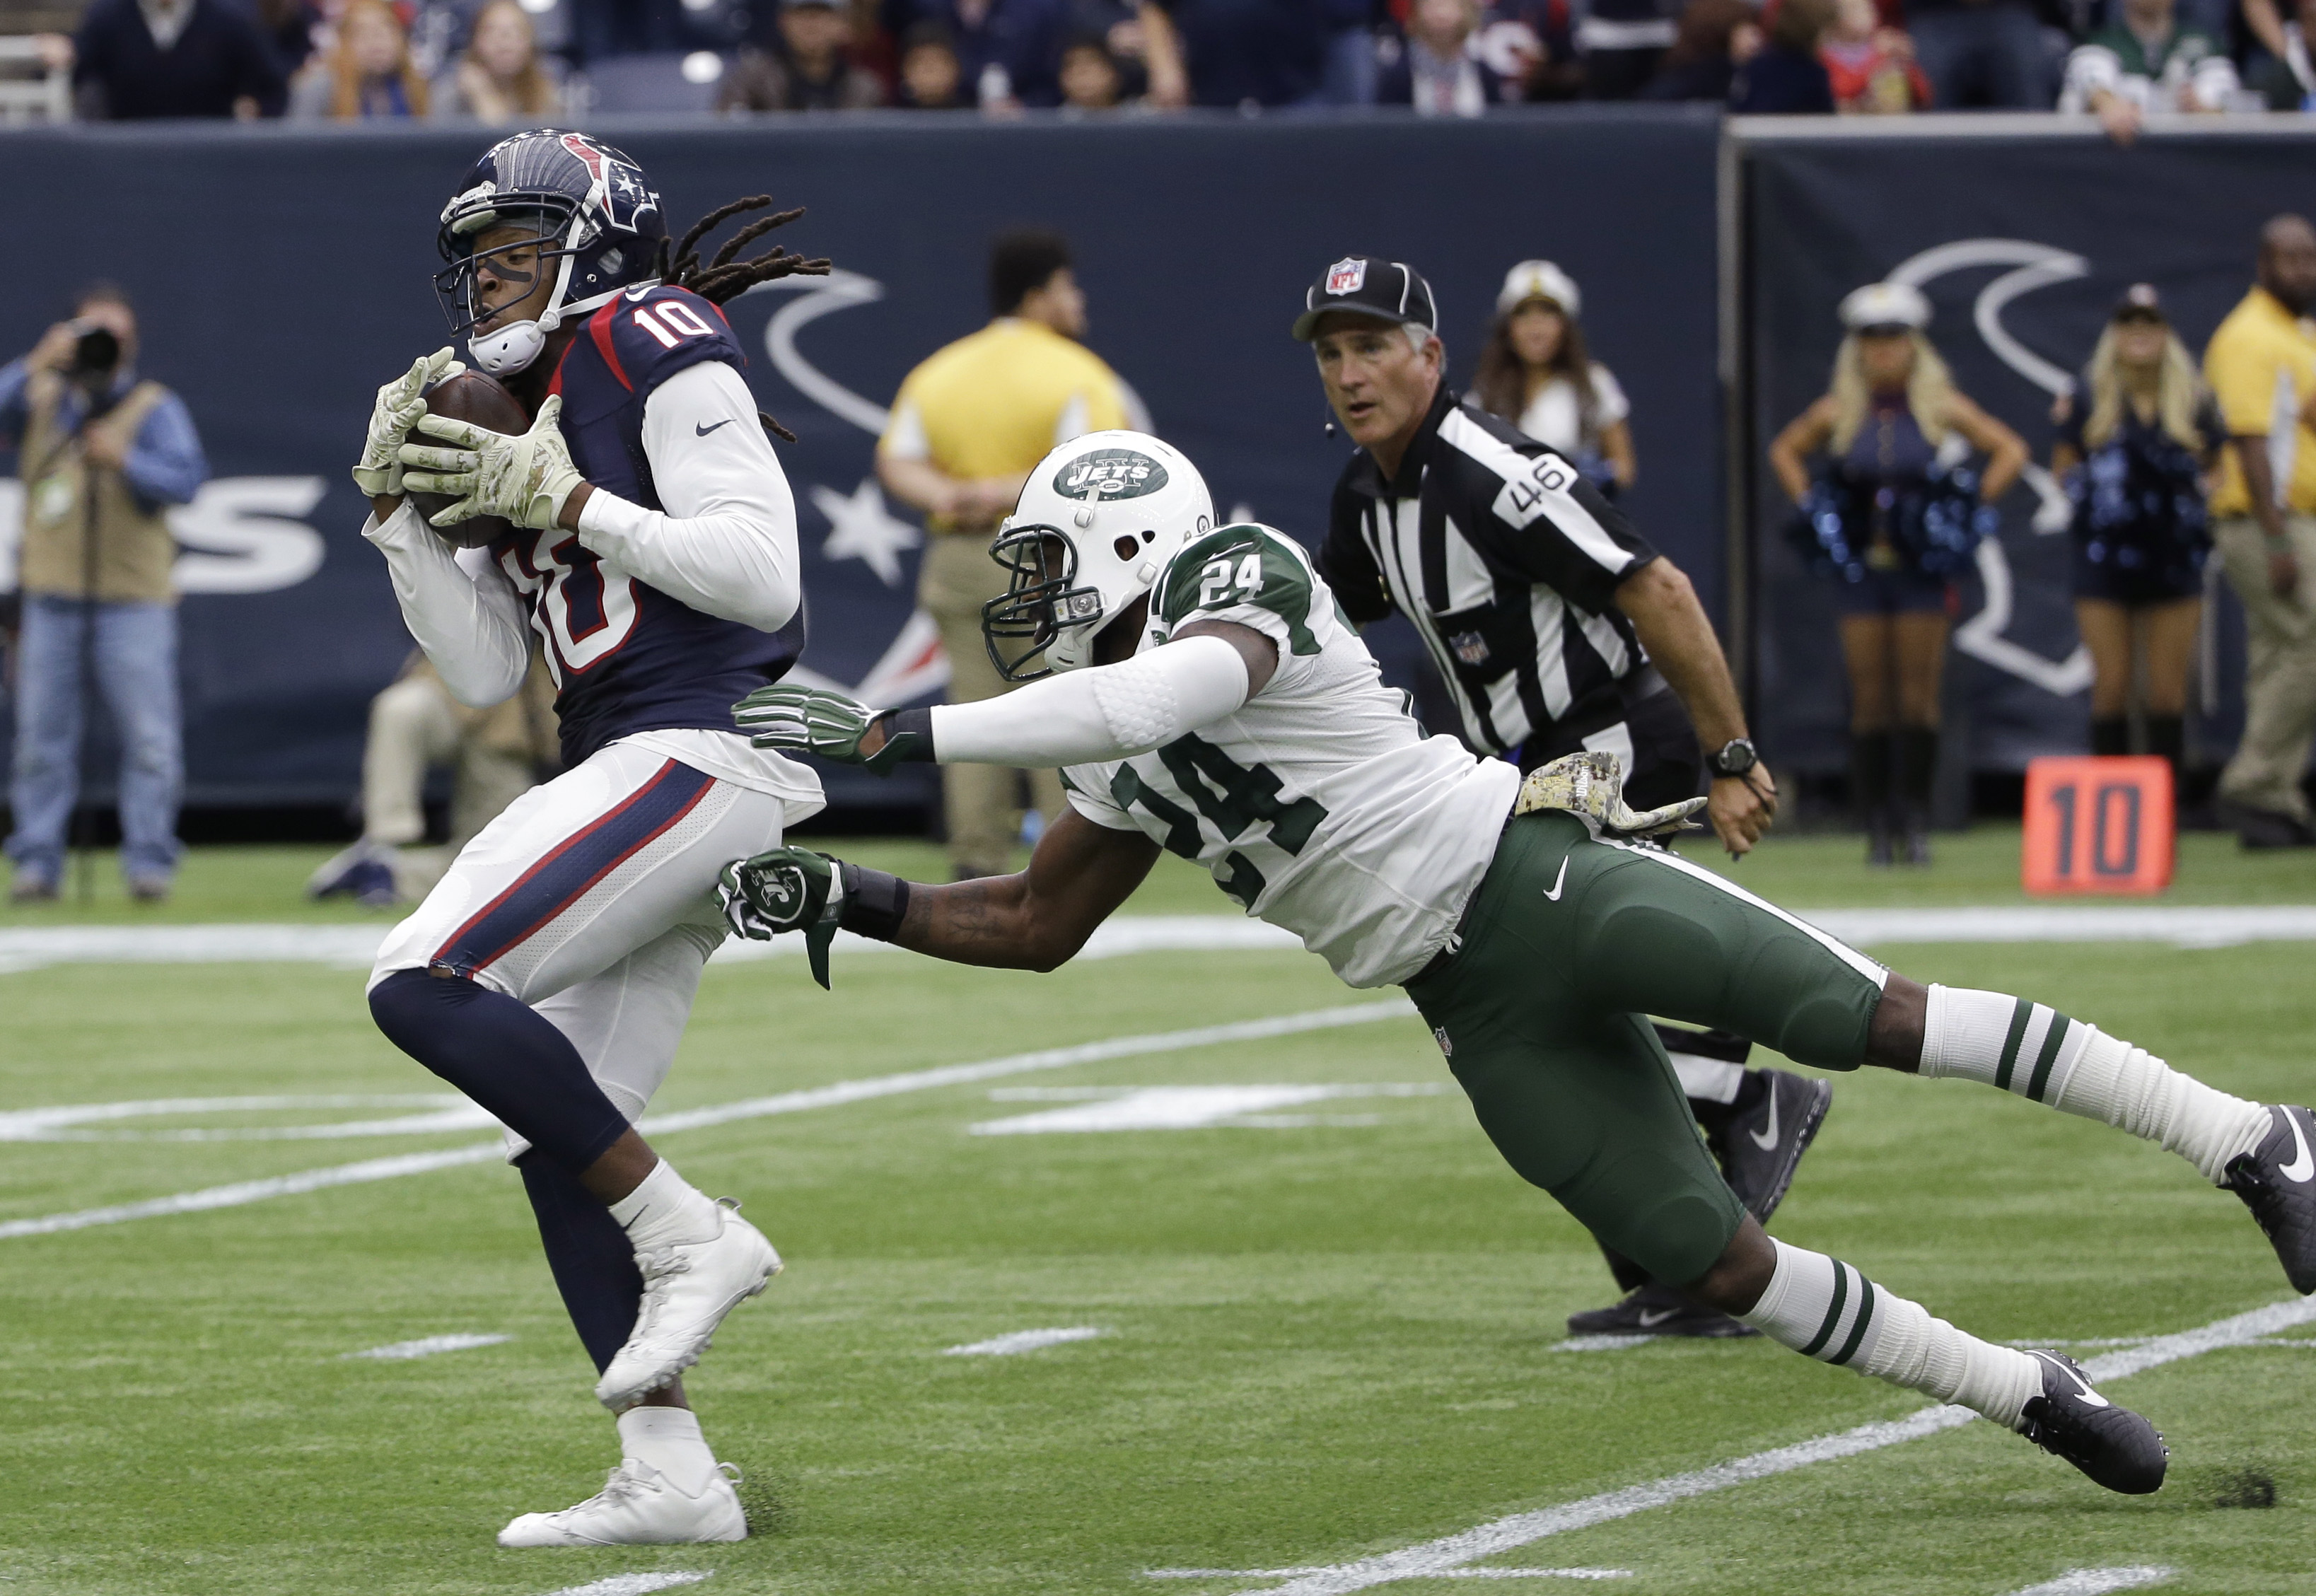 Houston Texans wide receiver DeAndre Hopkins (10) pulls in a pass for a touchdown as he is defended by New York Jets cornerback Darrelle Revis (24) during the first half of an NFL football game, Sunday, Nov. 22, 2015, in Houston. (AP Photo/David J. Philli